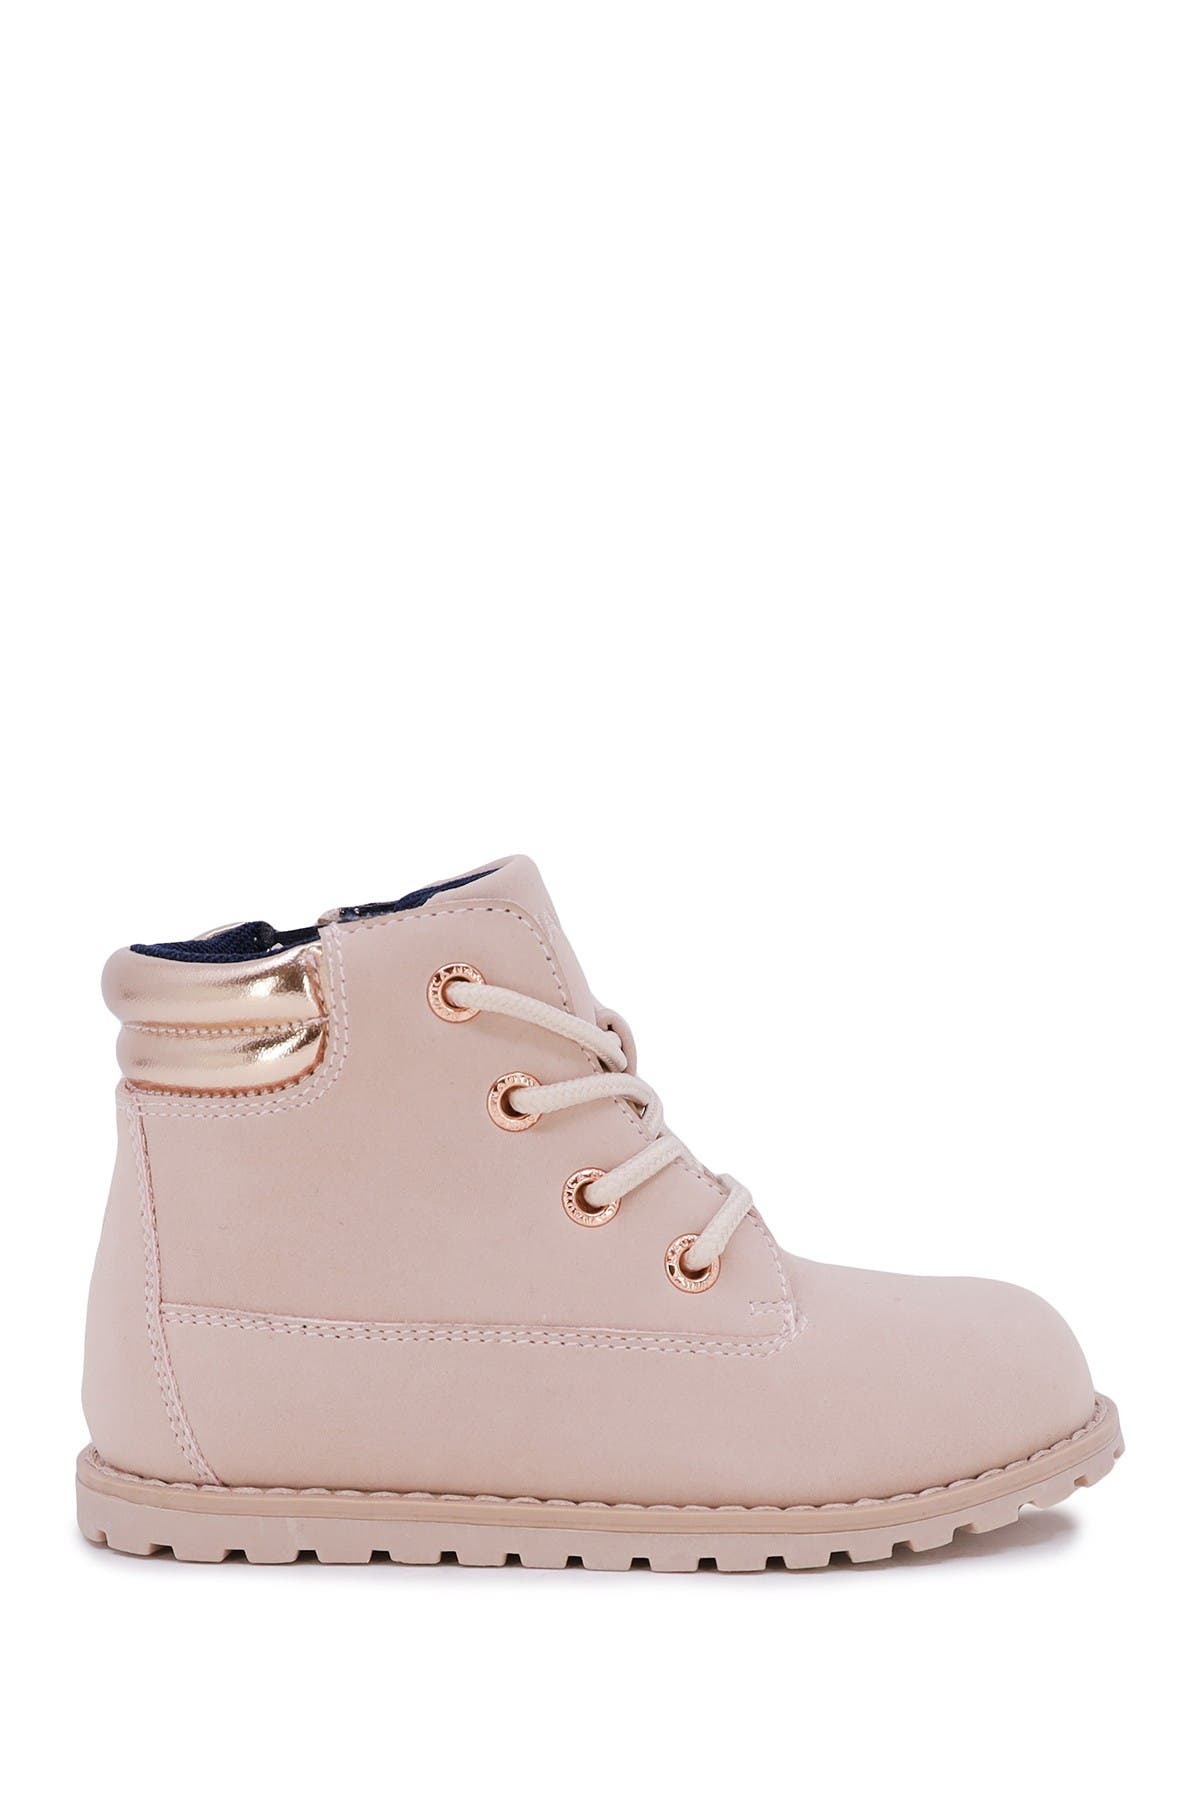 Nautica Daven Lace-Up Boot